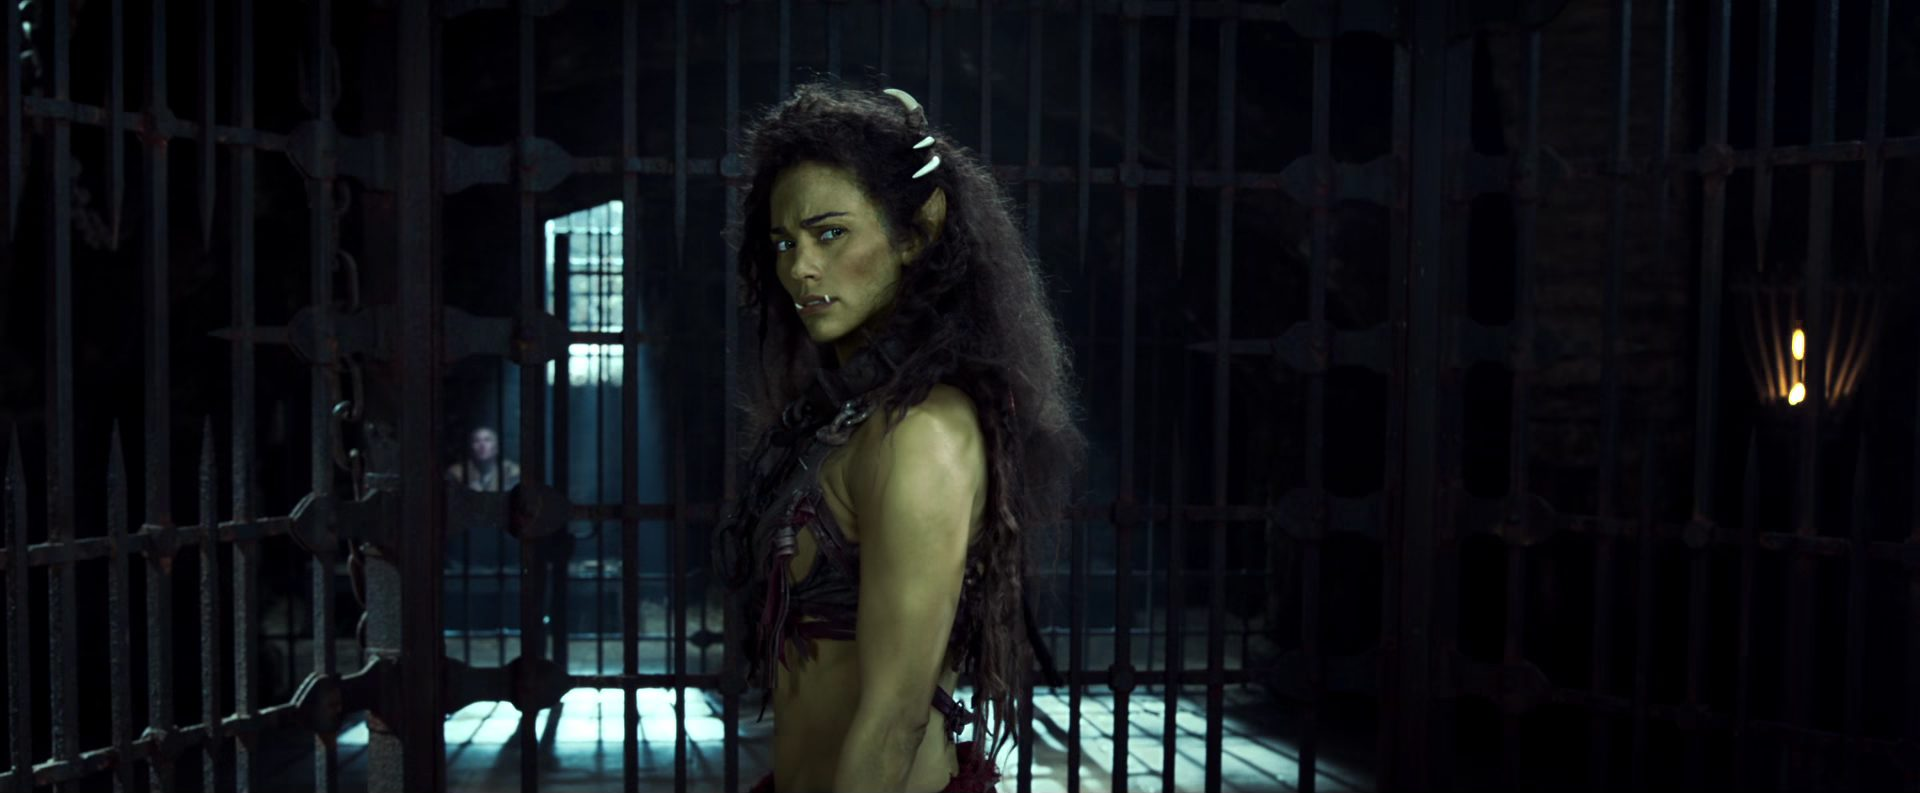 warcraft-movie-garona-spotlight-video-8-1920x793